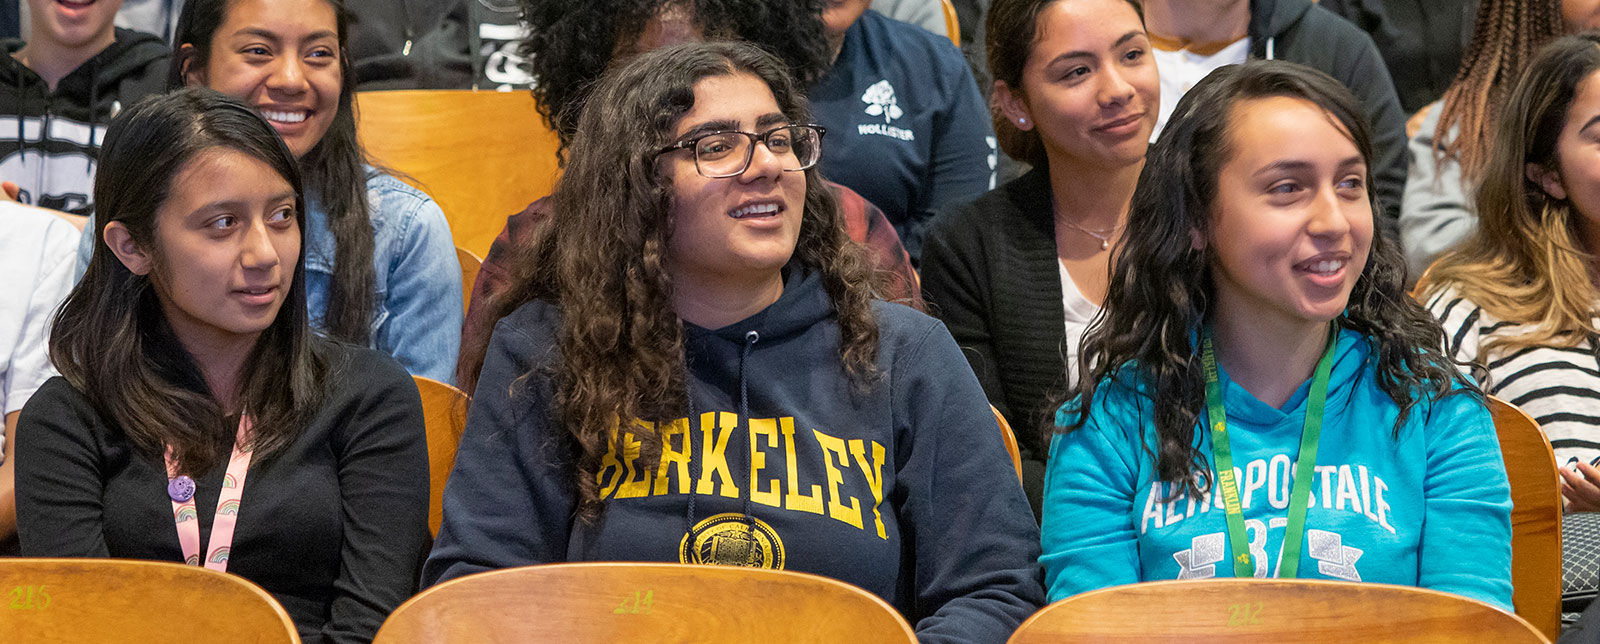 Students sitting at Janet Napolitano's Stockton visit